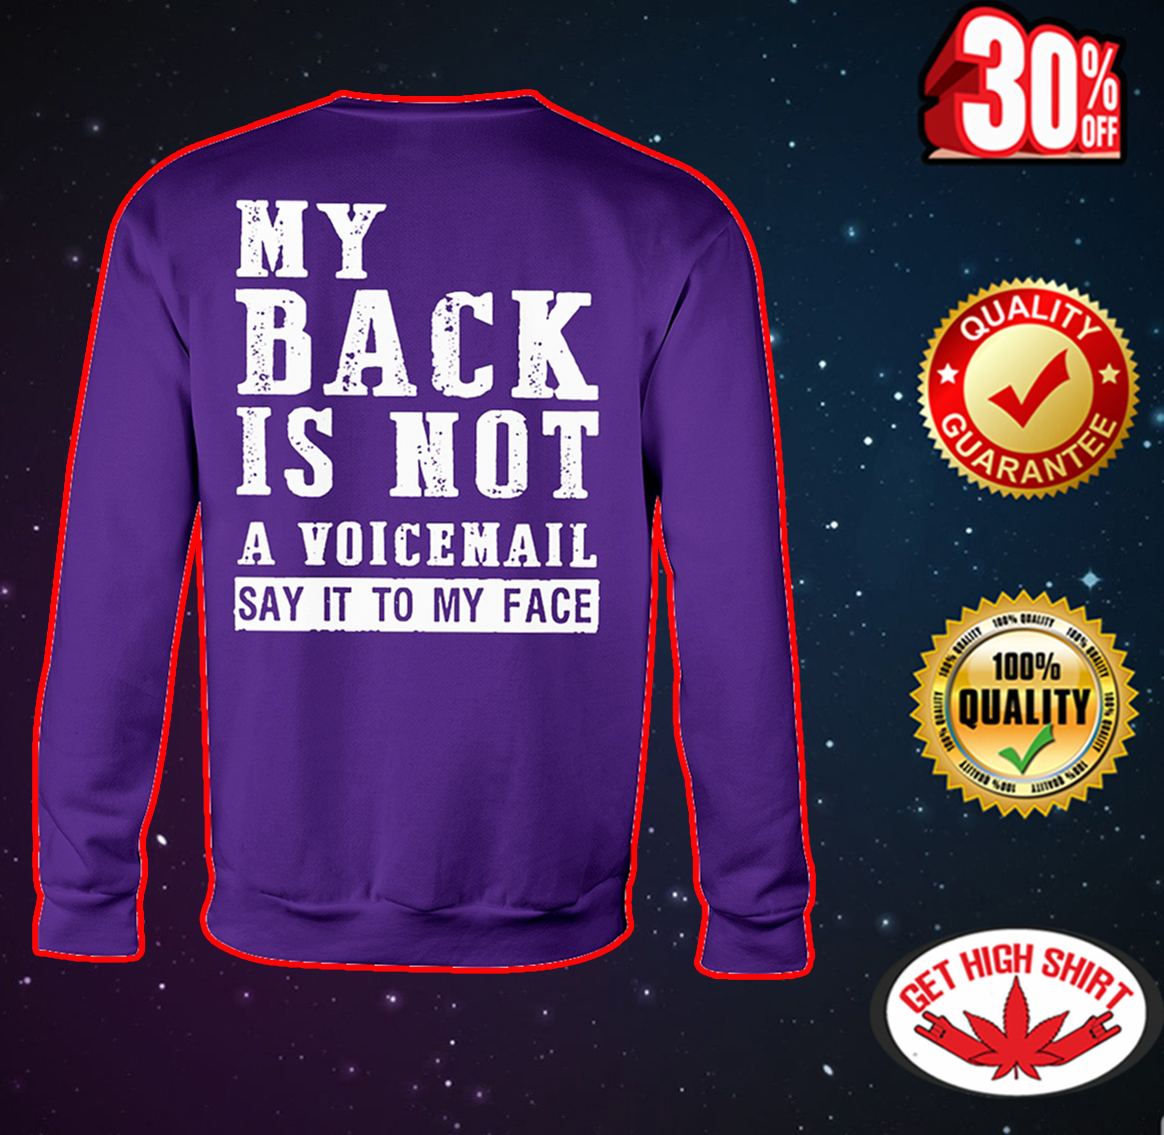 My back is not a voicemail say it to my face sweatshirt